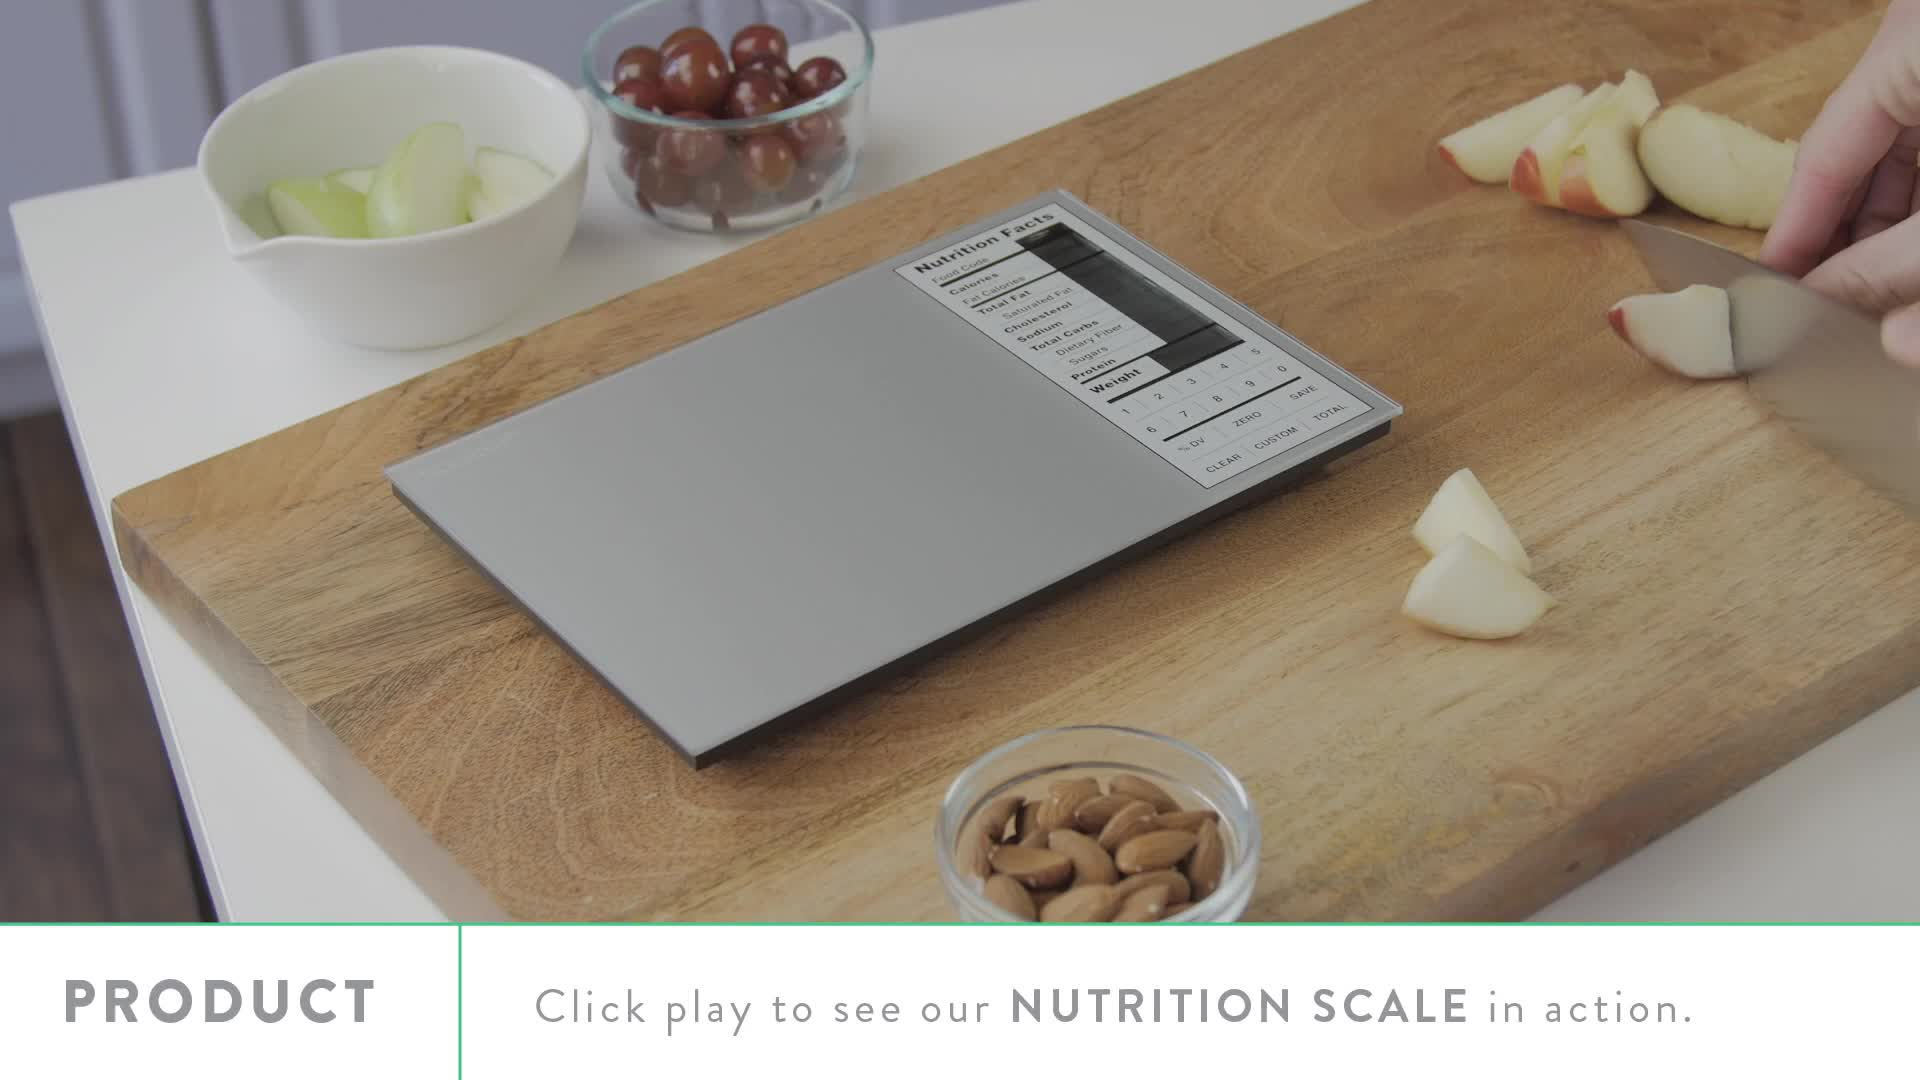 Watch The Video For Perfect Portions Digital Nutrition Food Scale